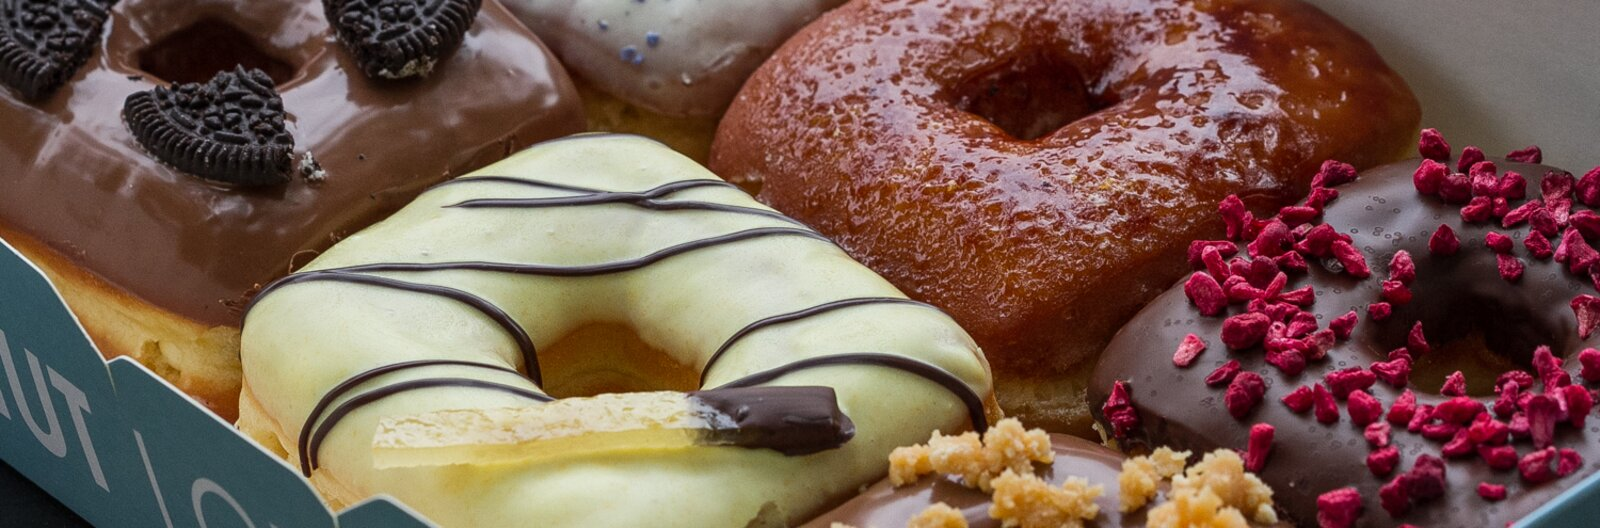 Where to find Budapest's best fancy doughnuts